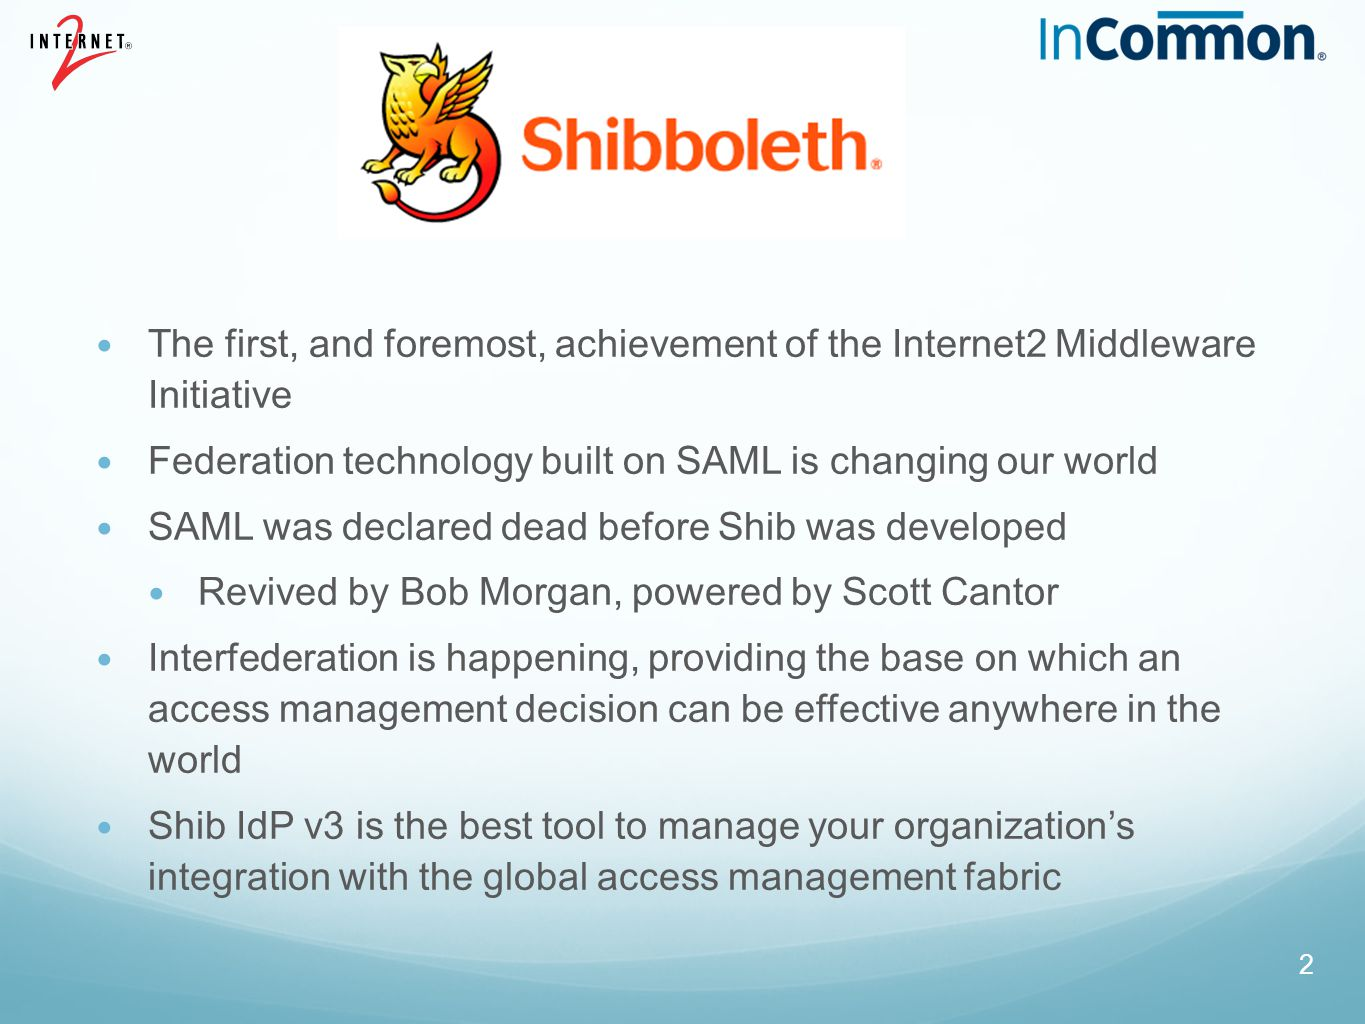 The first, and foremost, achievement of the Internet2 Middleware Initiative